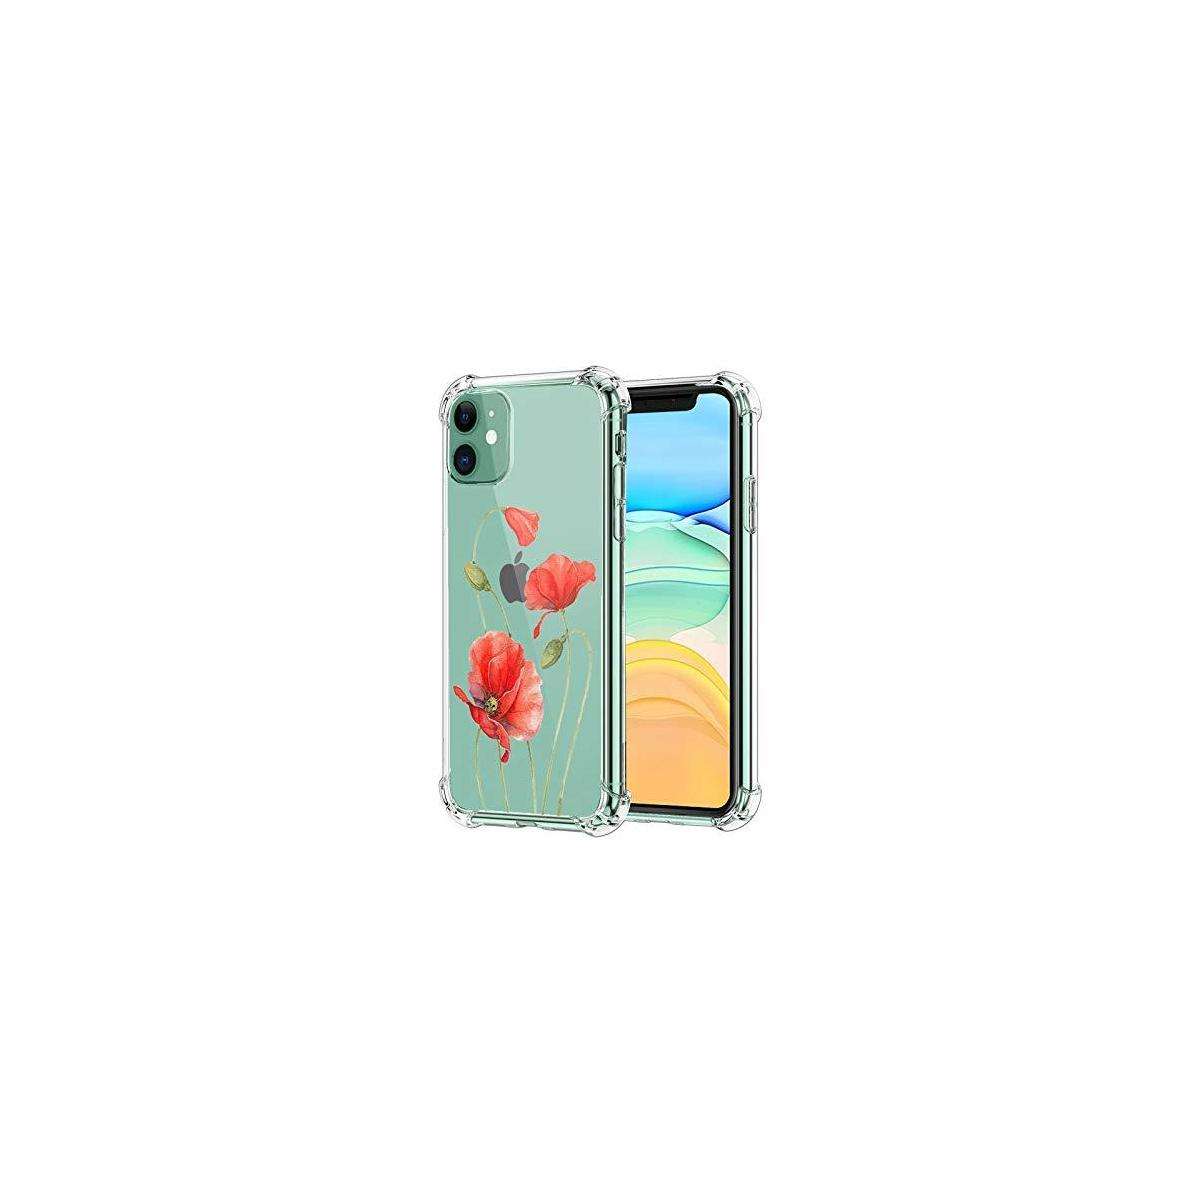 iPhone 11 Clear Case Flowers (+) 2 or 1 Free Screen Protectors, Transparent Cover & Protective iPhone 11 Case, Red Tulips